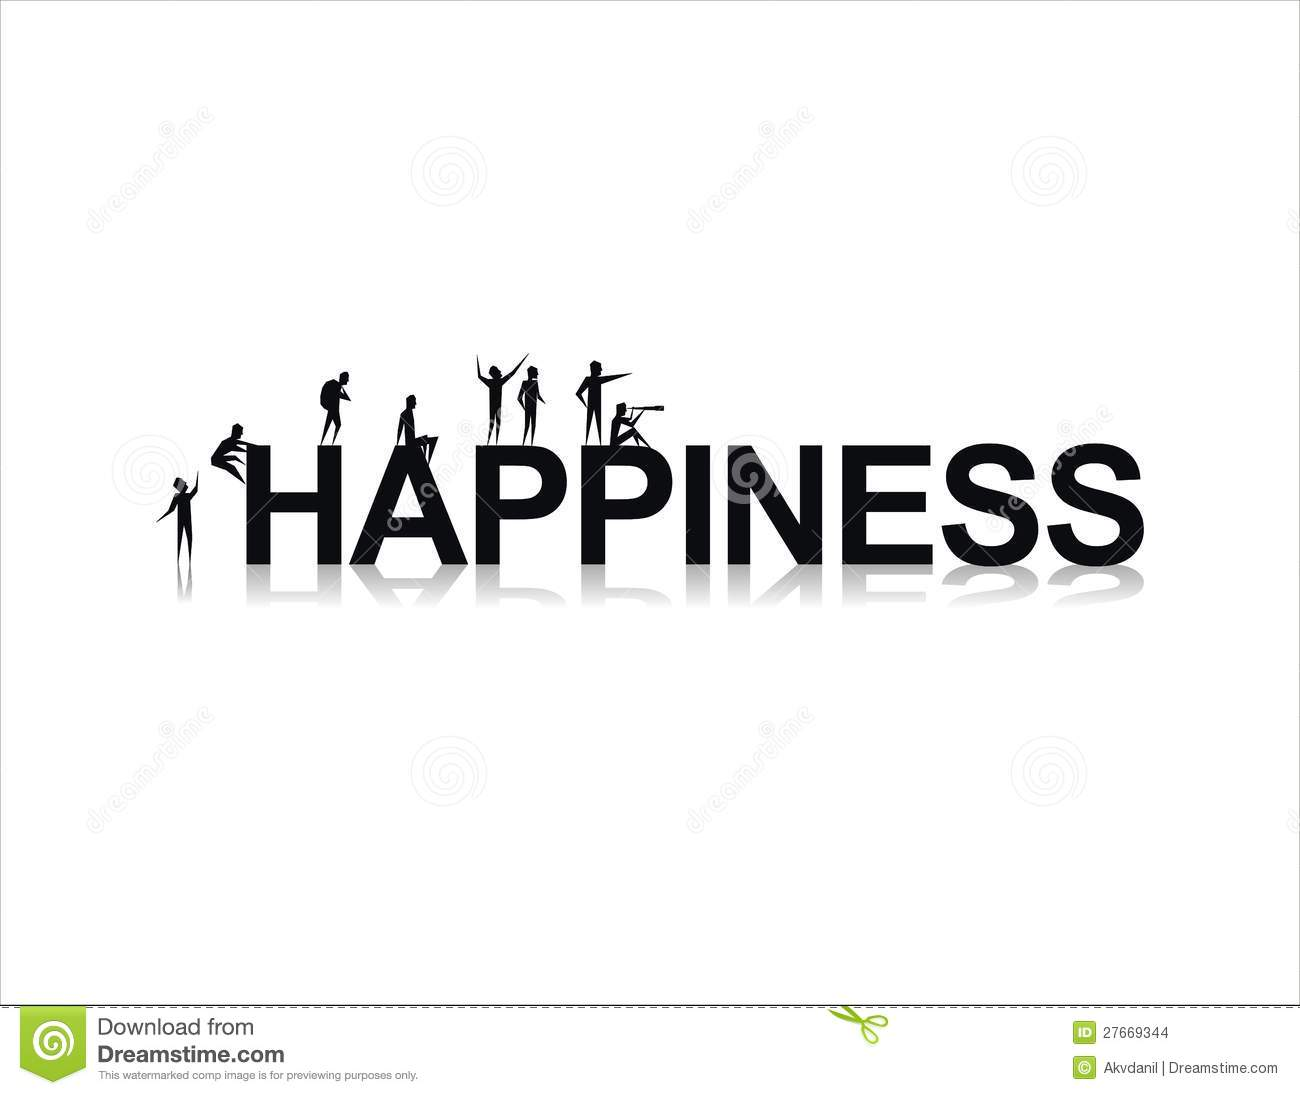 Happiness stock vector. Image of people, philosophy